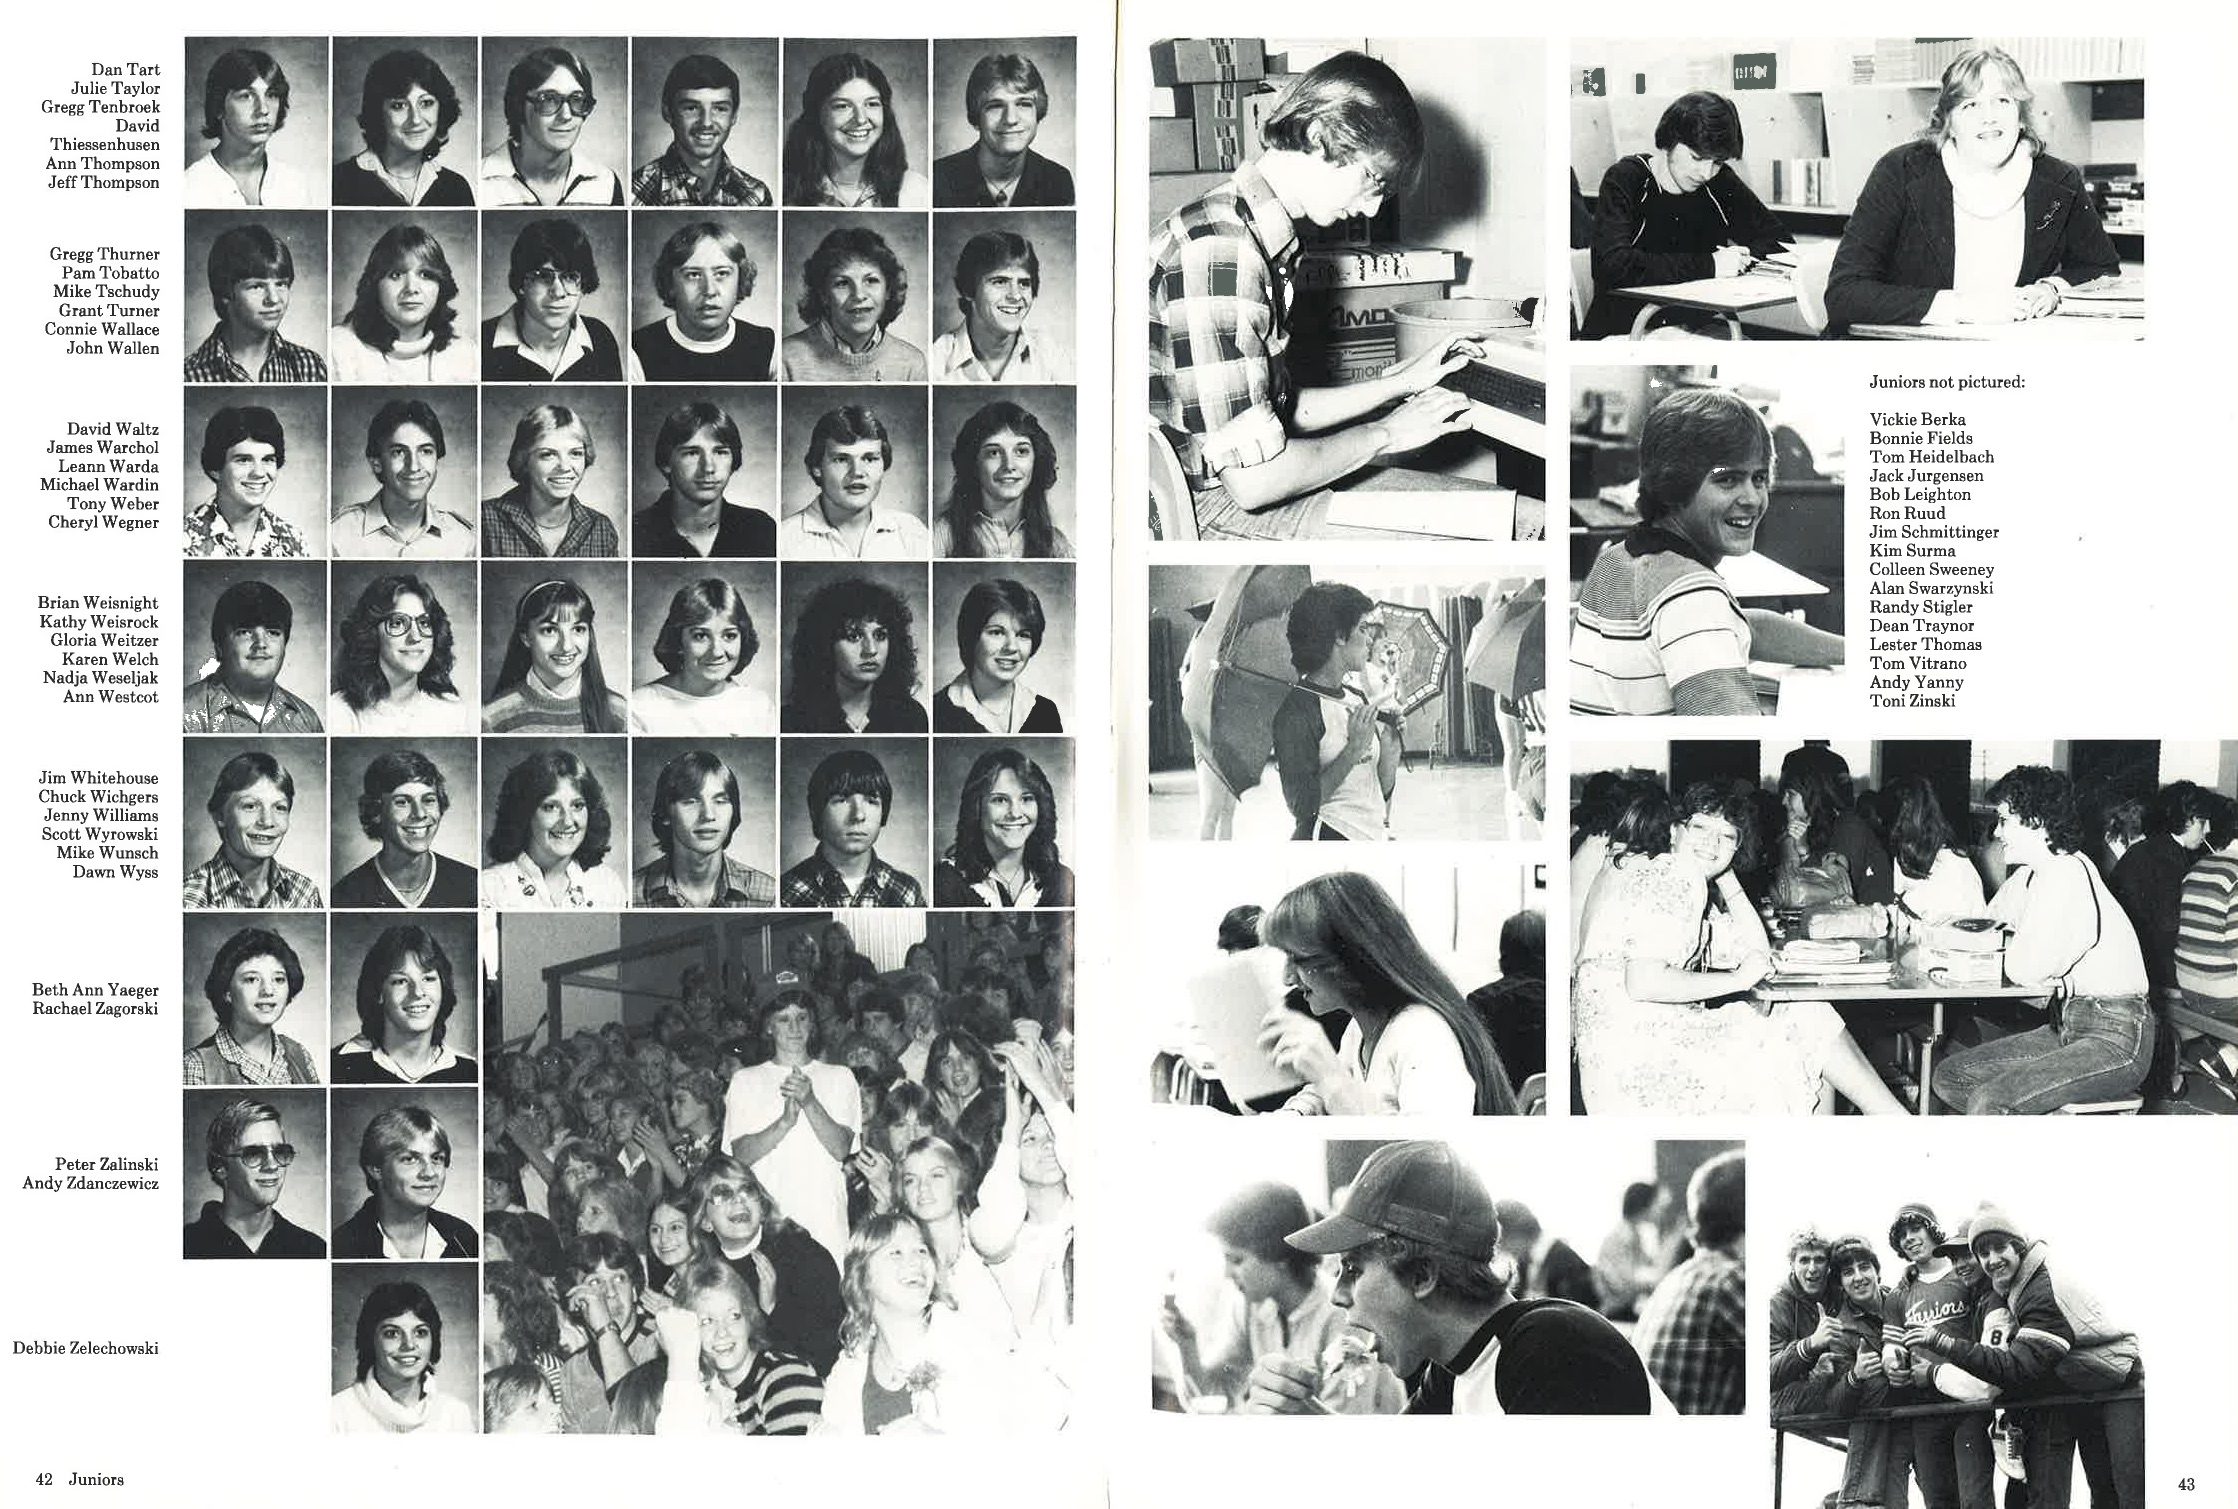 1982_Yearbook_42.jpg